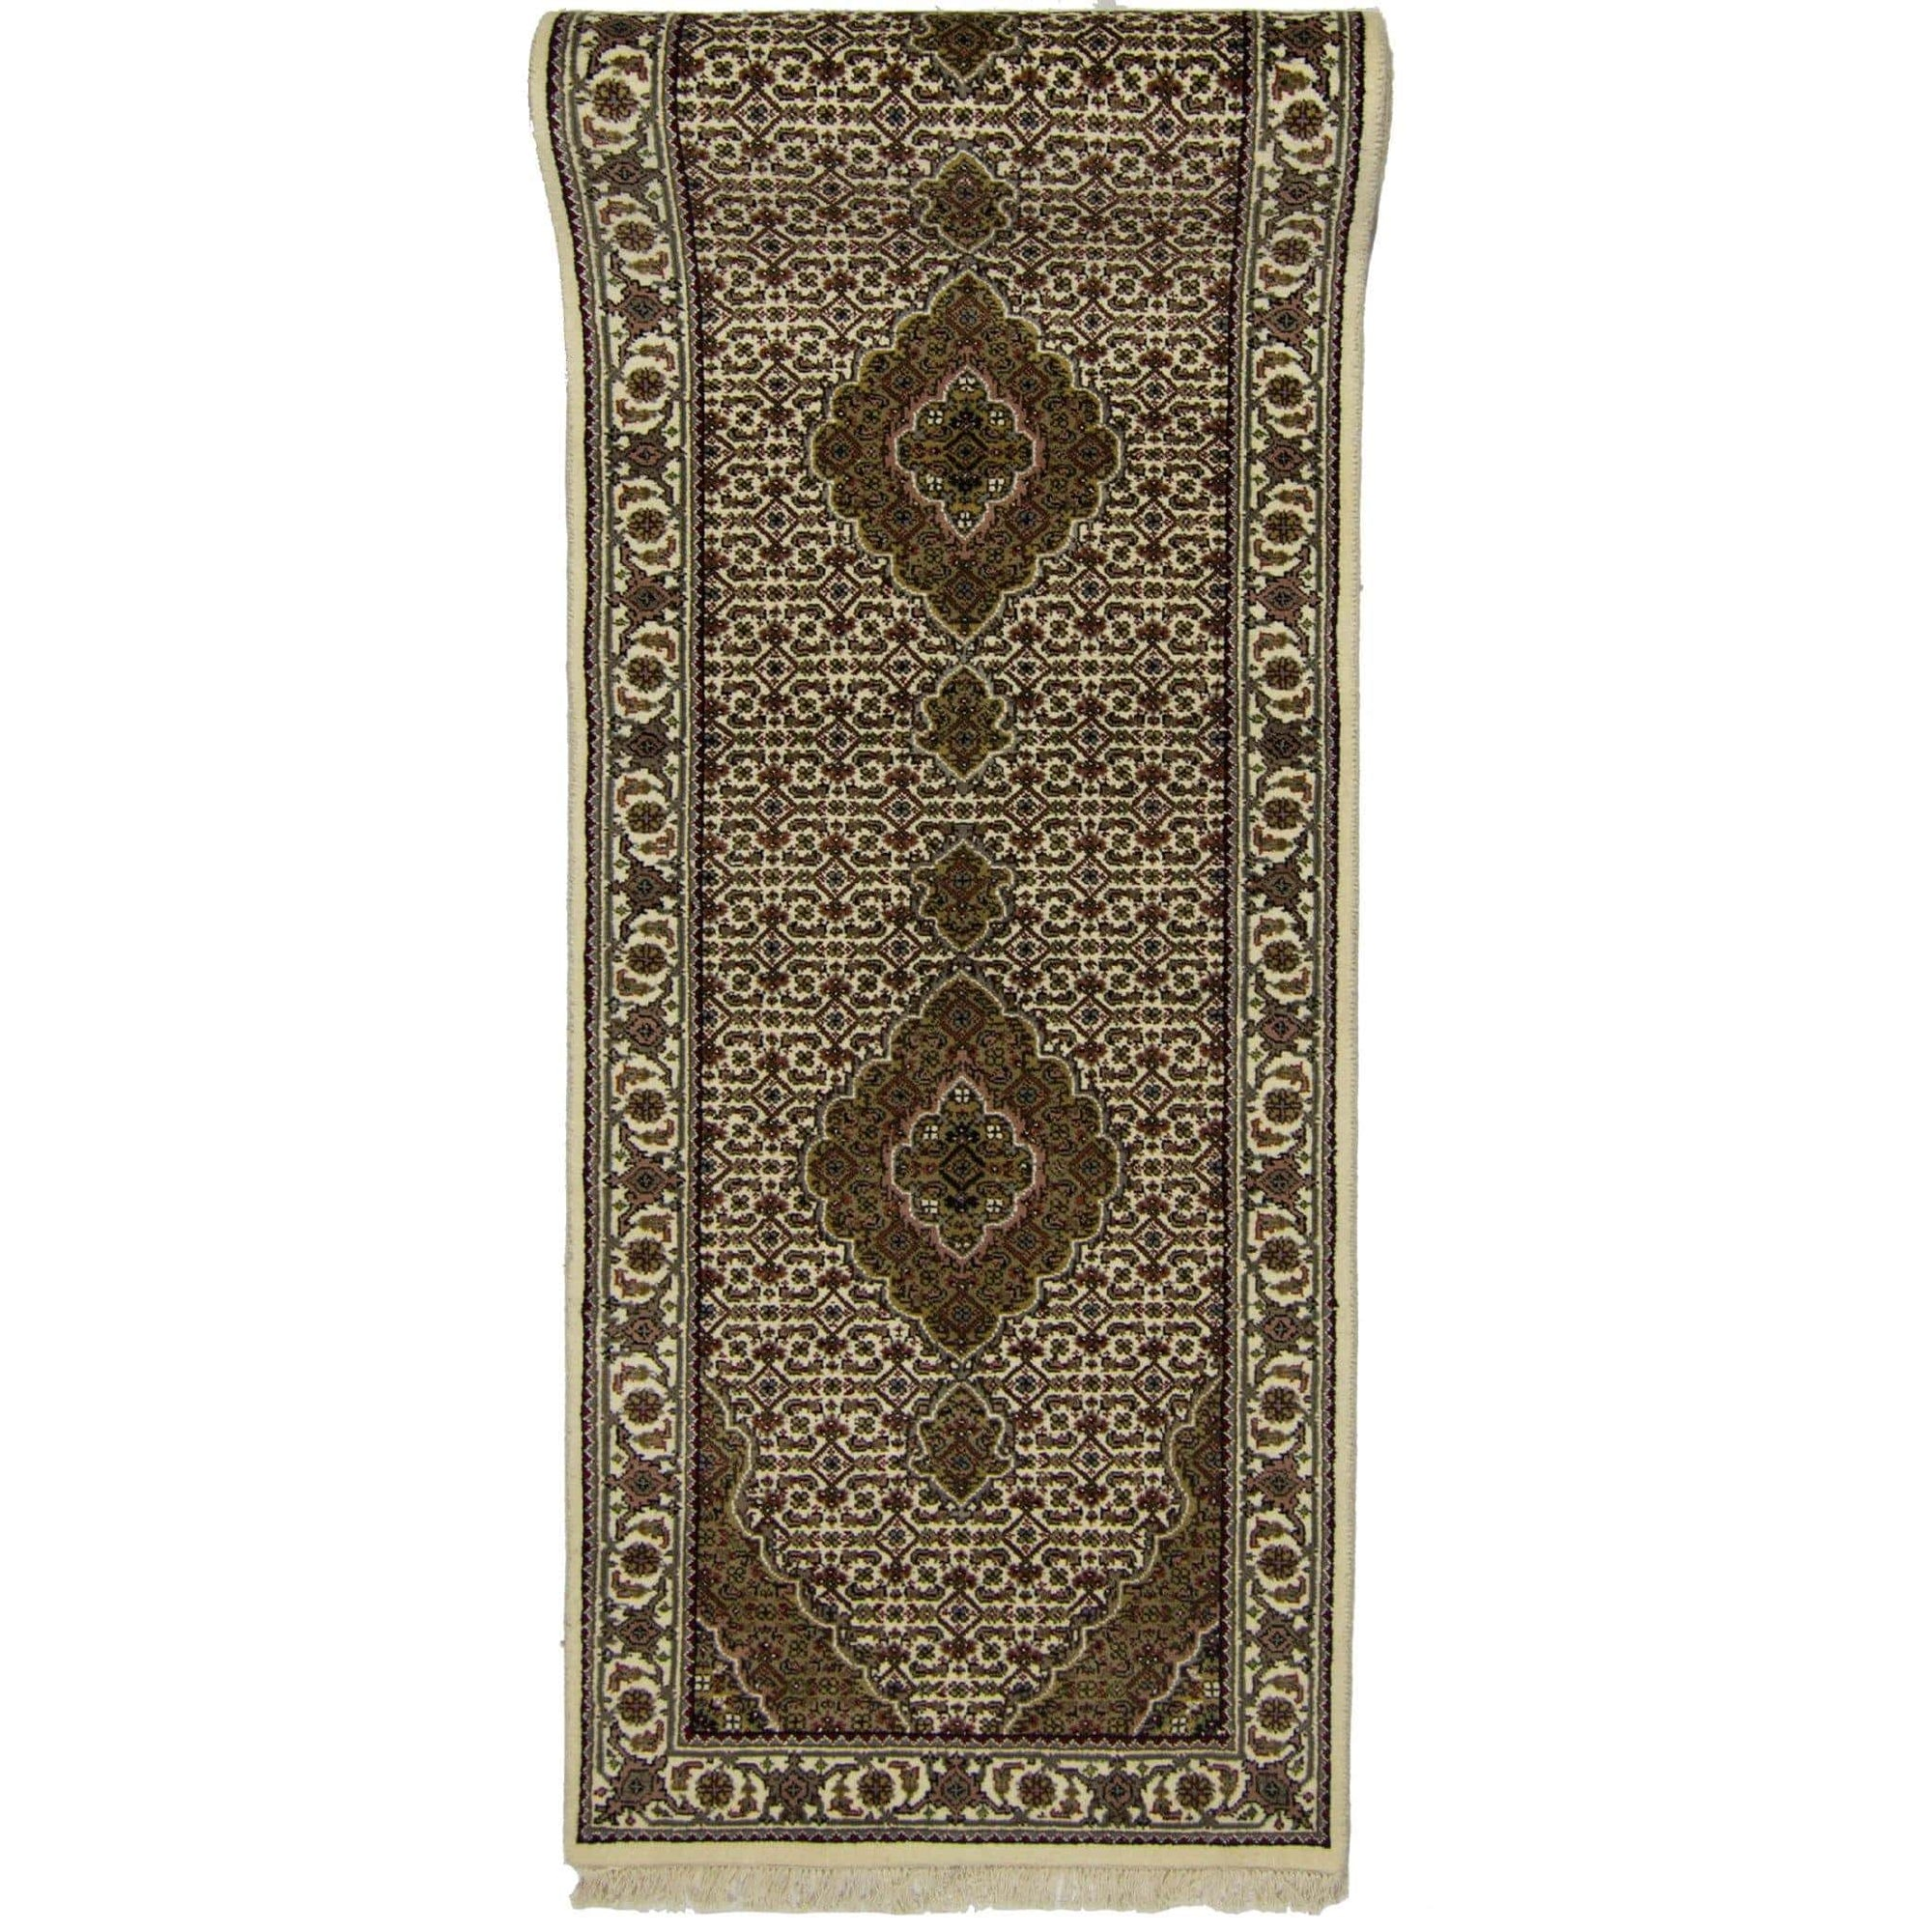 Fine Hand-knotted NZ Wool Tabriz-Mahi Design Runner 86cm x 300cm Persian-Rug | House-of-Haghi | NewMarket | Auckland | NZ | Handmade Persian Rugs | Hand Knotted Persian Rugs